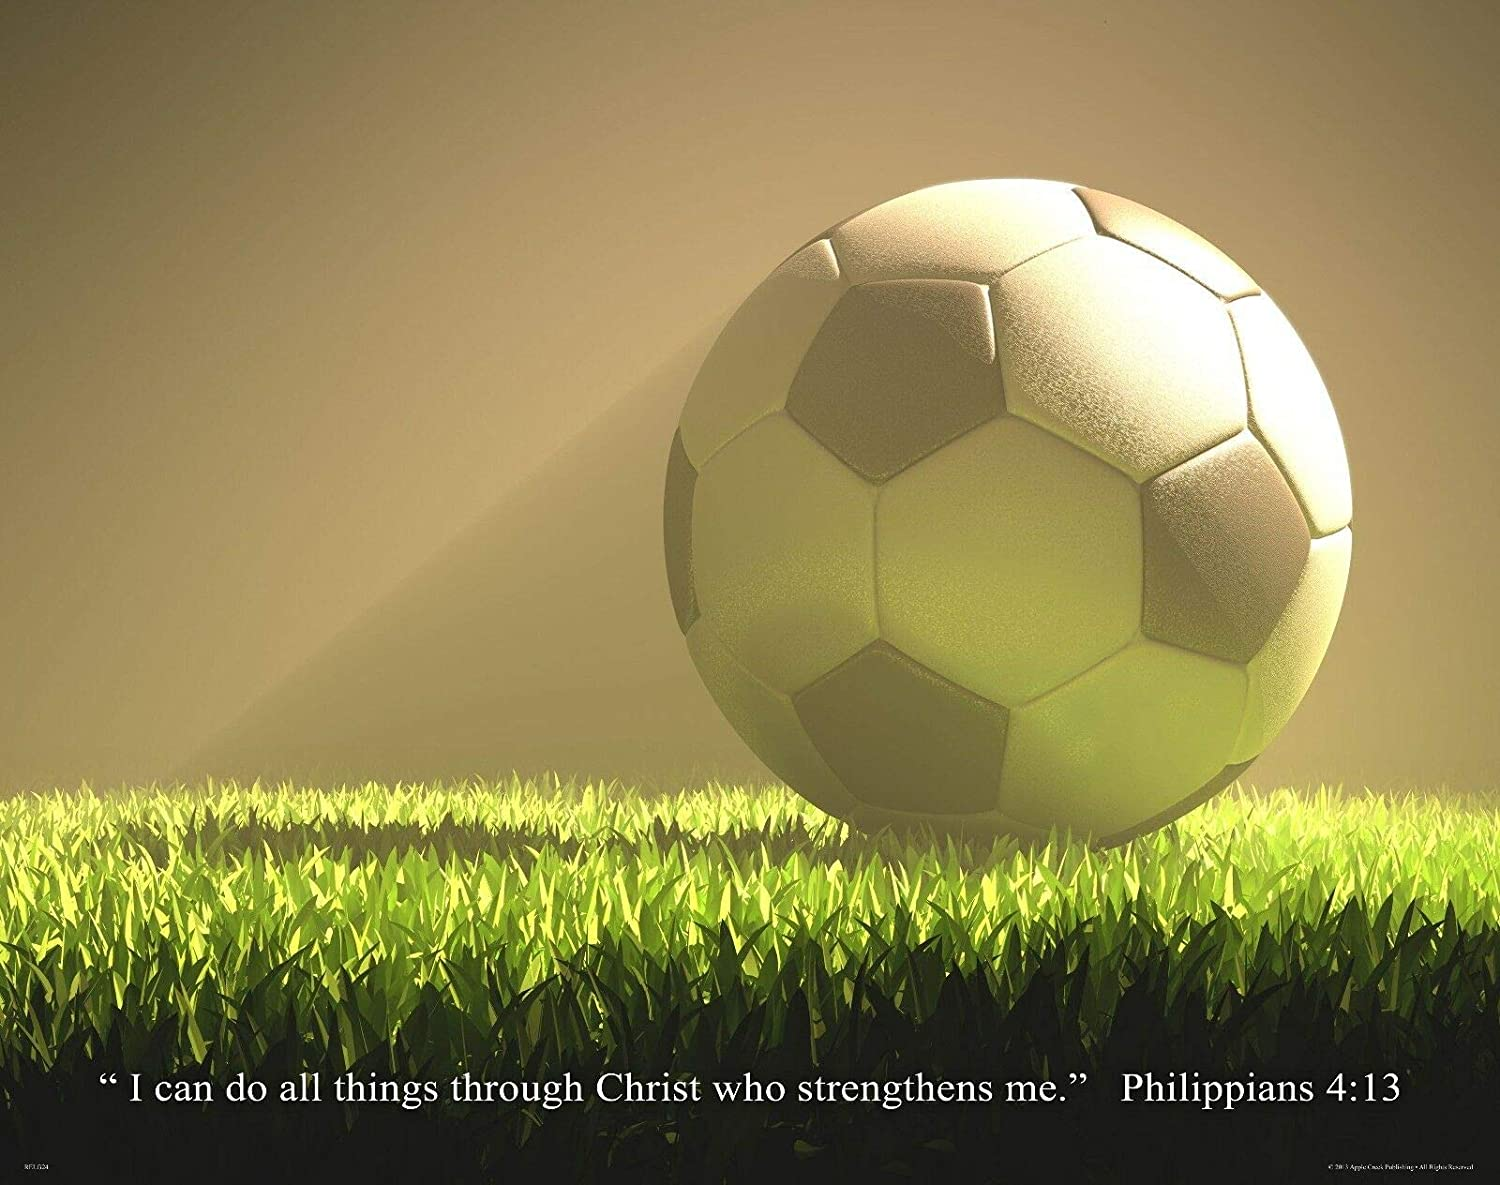 Apple Creek Religious Inspirtational Motivational Poster Art Print 11x14 Soccer Philippians 4:13 Wall Decor Pictures